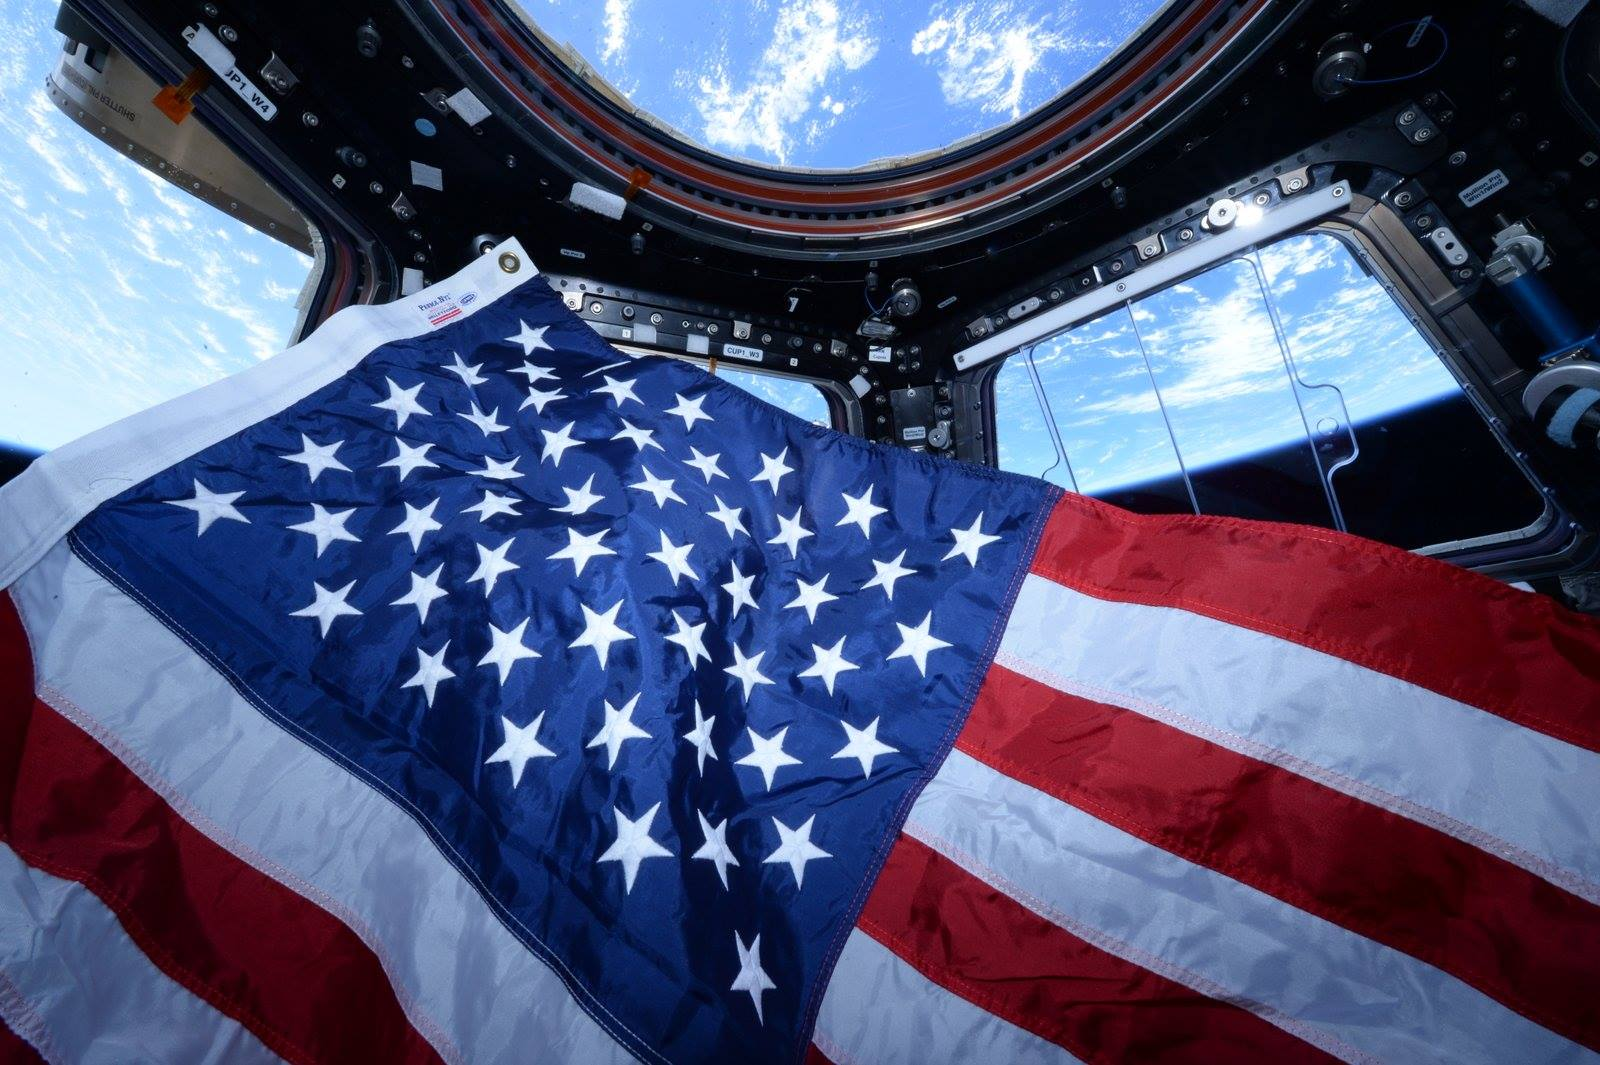 American Flag on the International Space Station